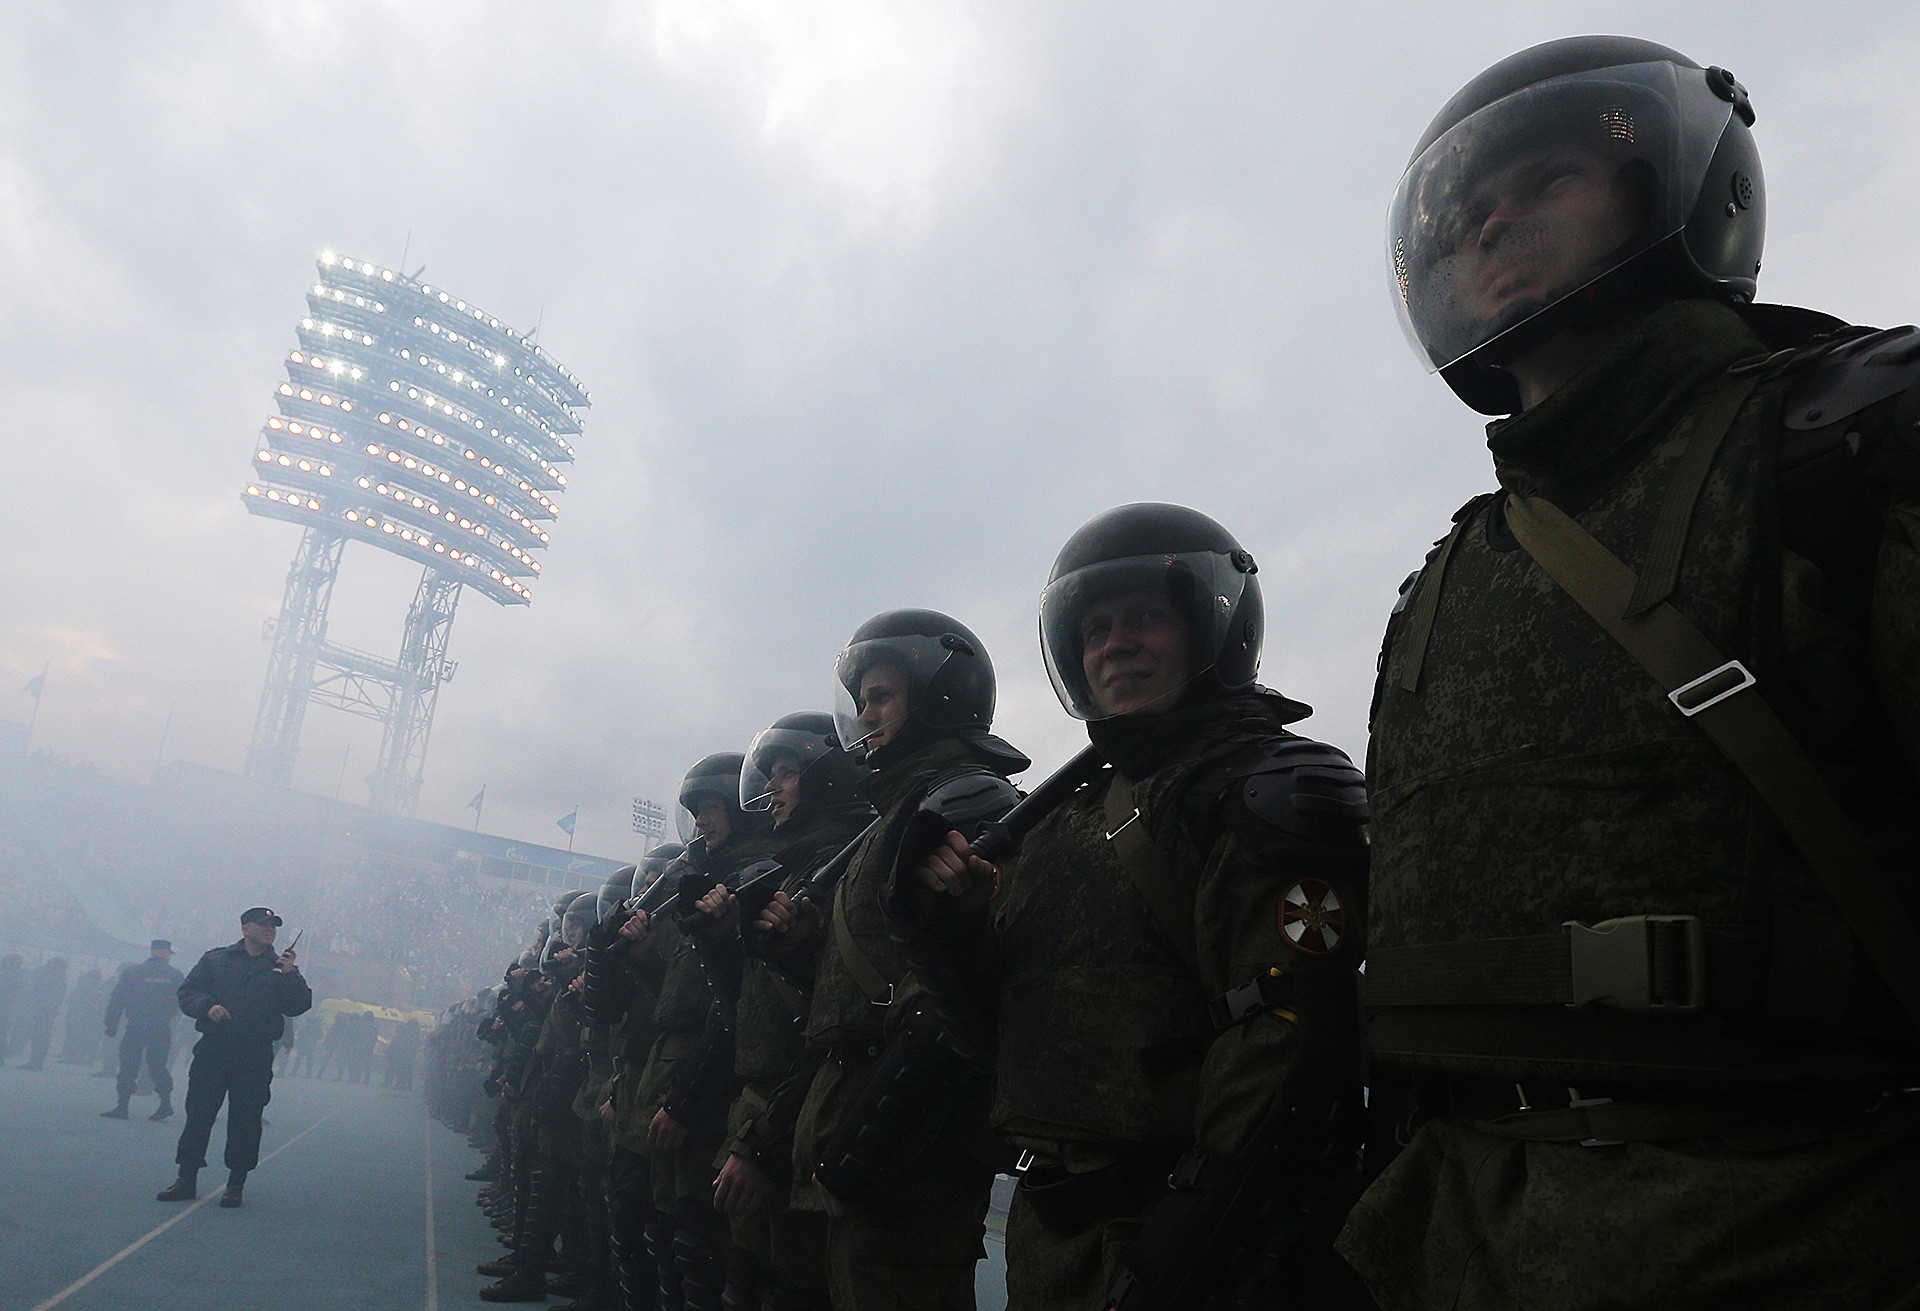 Police officers seen as football fans set off flares after the 2014/15 Season Russian Premier League.